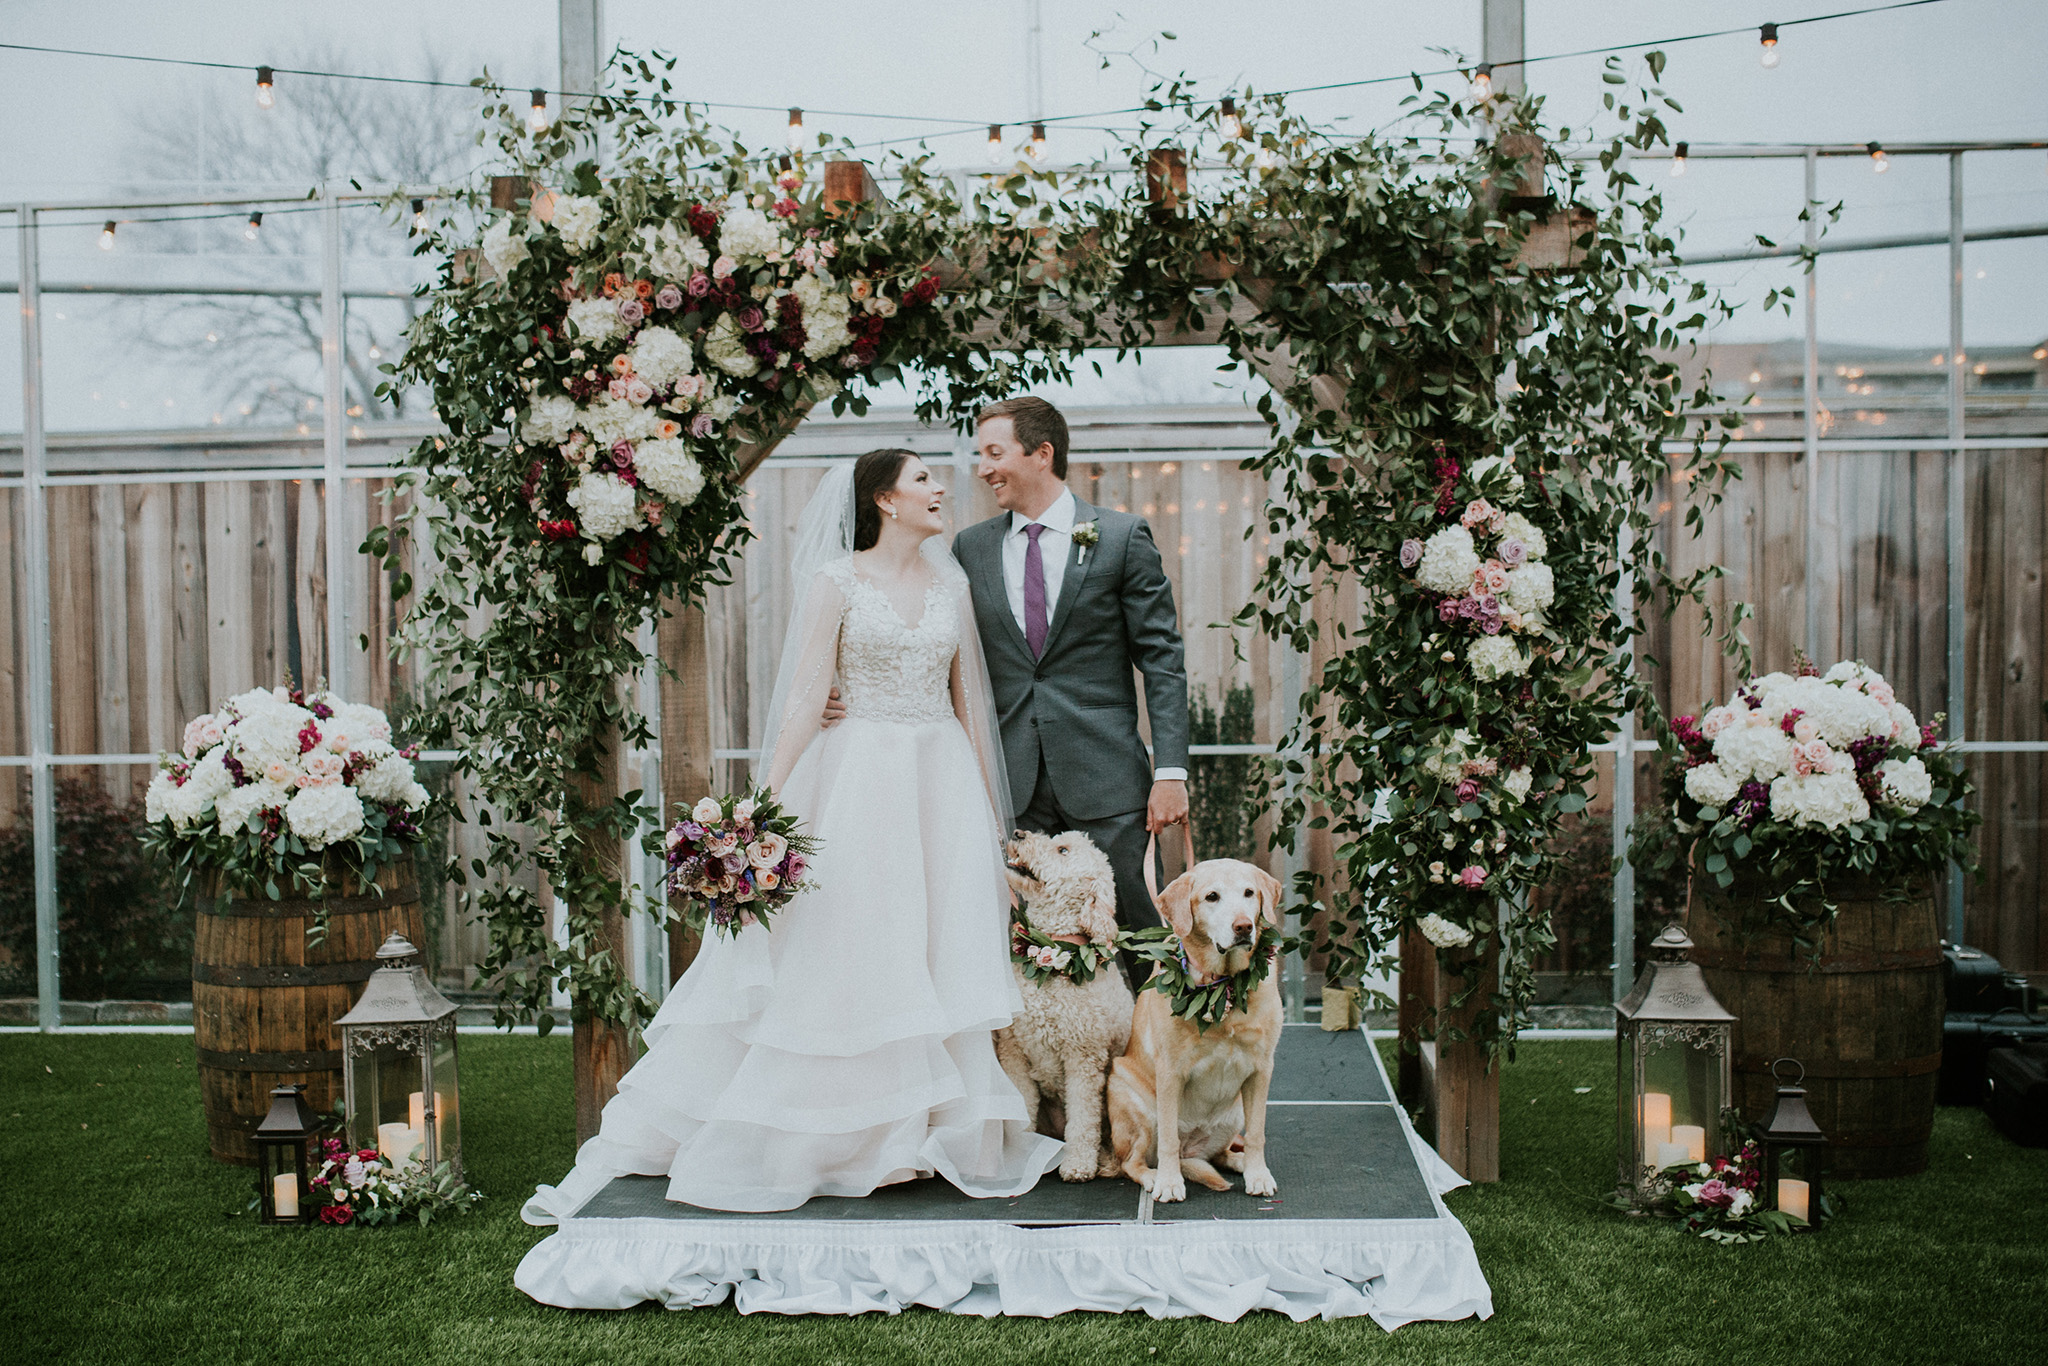 March 4: Wedding-ing has gone to the dogs on the rainiest, loveliest day.